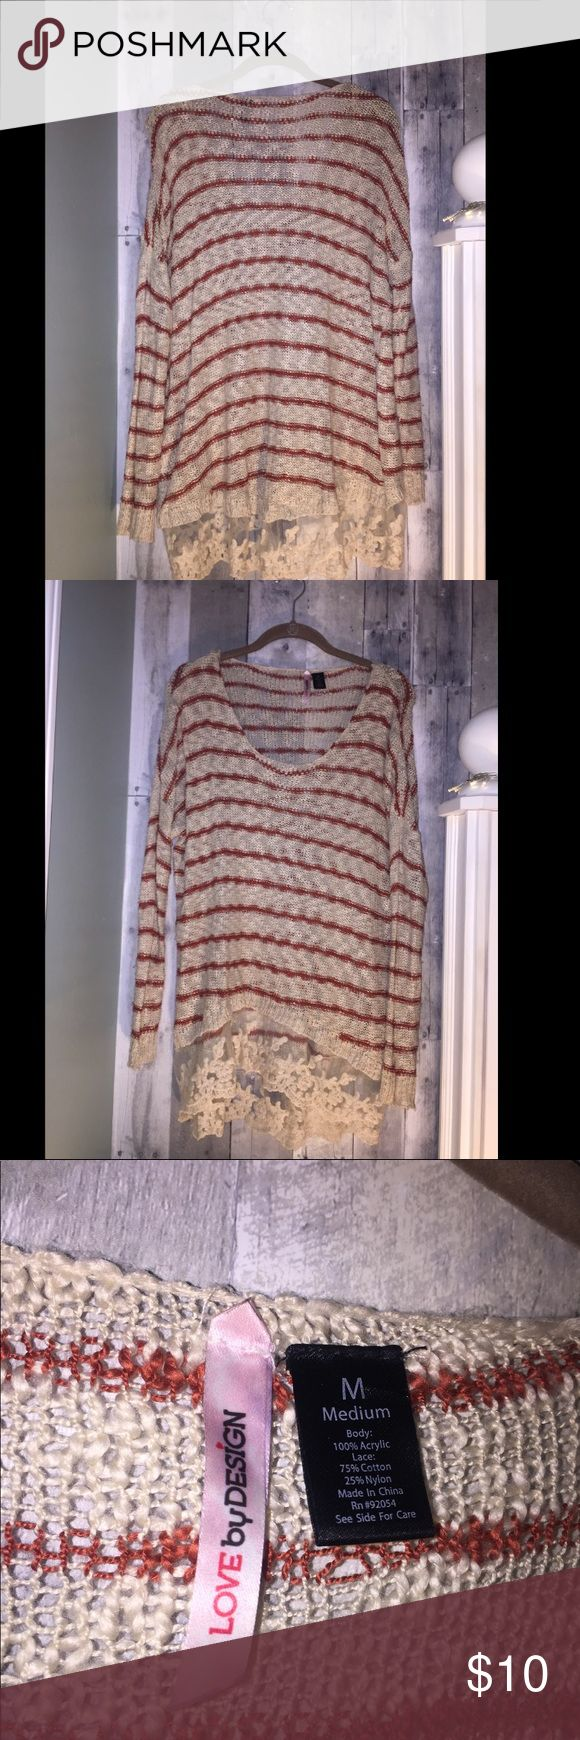 Slouchy Cream & Red Sweater This sweater is super comfy. It is Cream with brick red stripes and a lace border along the bottom of the shirt. It is a high low shirt and is longer in the back. It looks very cute with a pair of leggings or jeans. Tops Tees - Long Sleeve